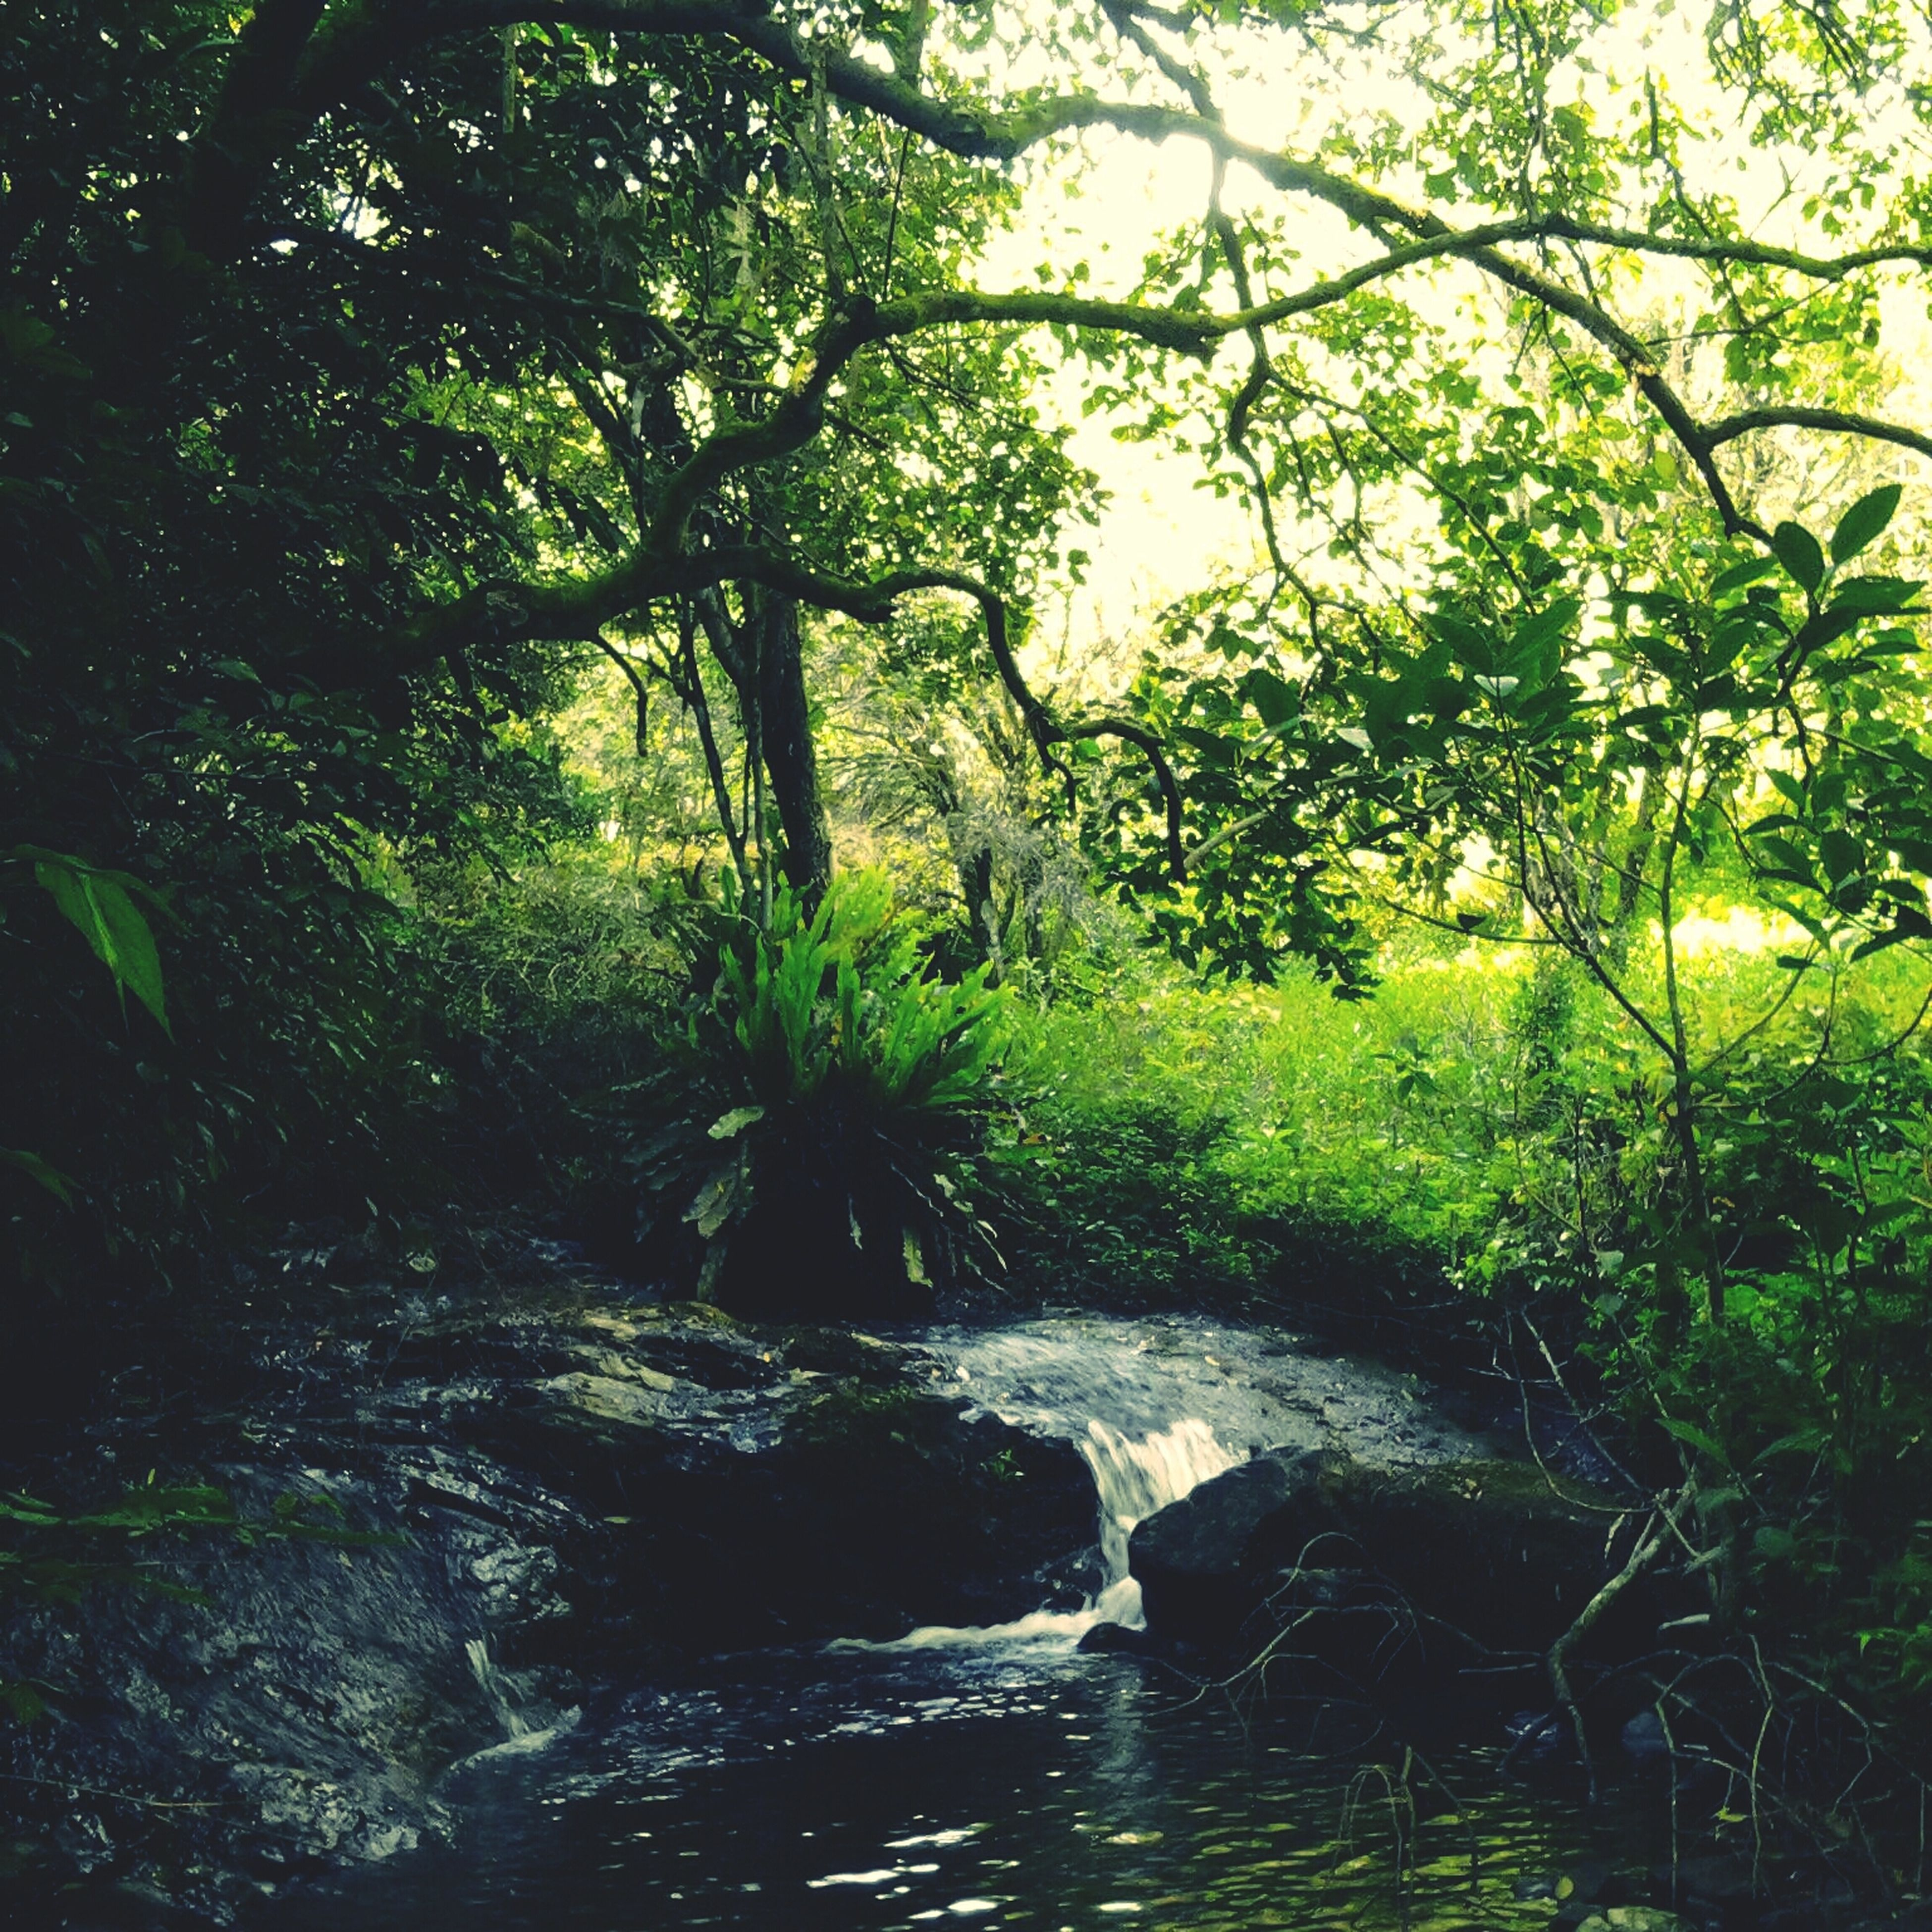 water, tree, green color, tranquility, growth, beauty in nature, nature, tranquil scene, scenics, forest, stream, river, waterfront, plant, branch, lush foliage, day, flowing water, idyllic, non-urban scene